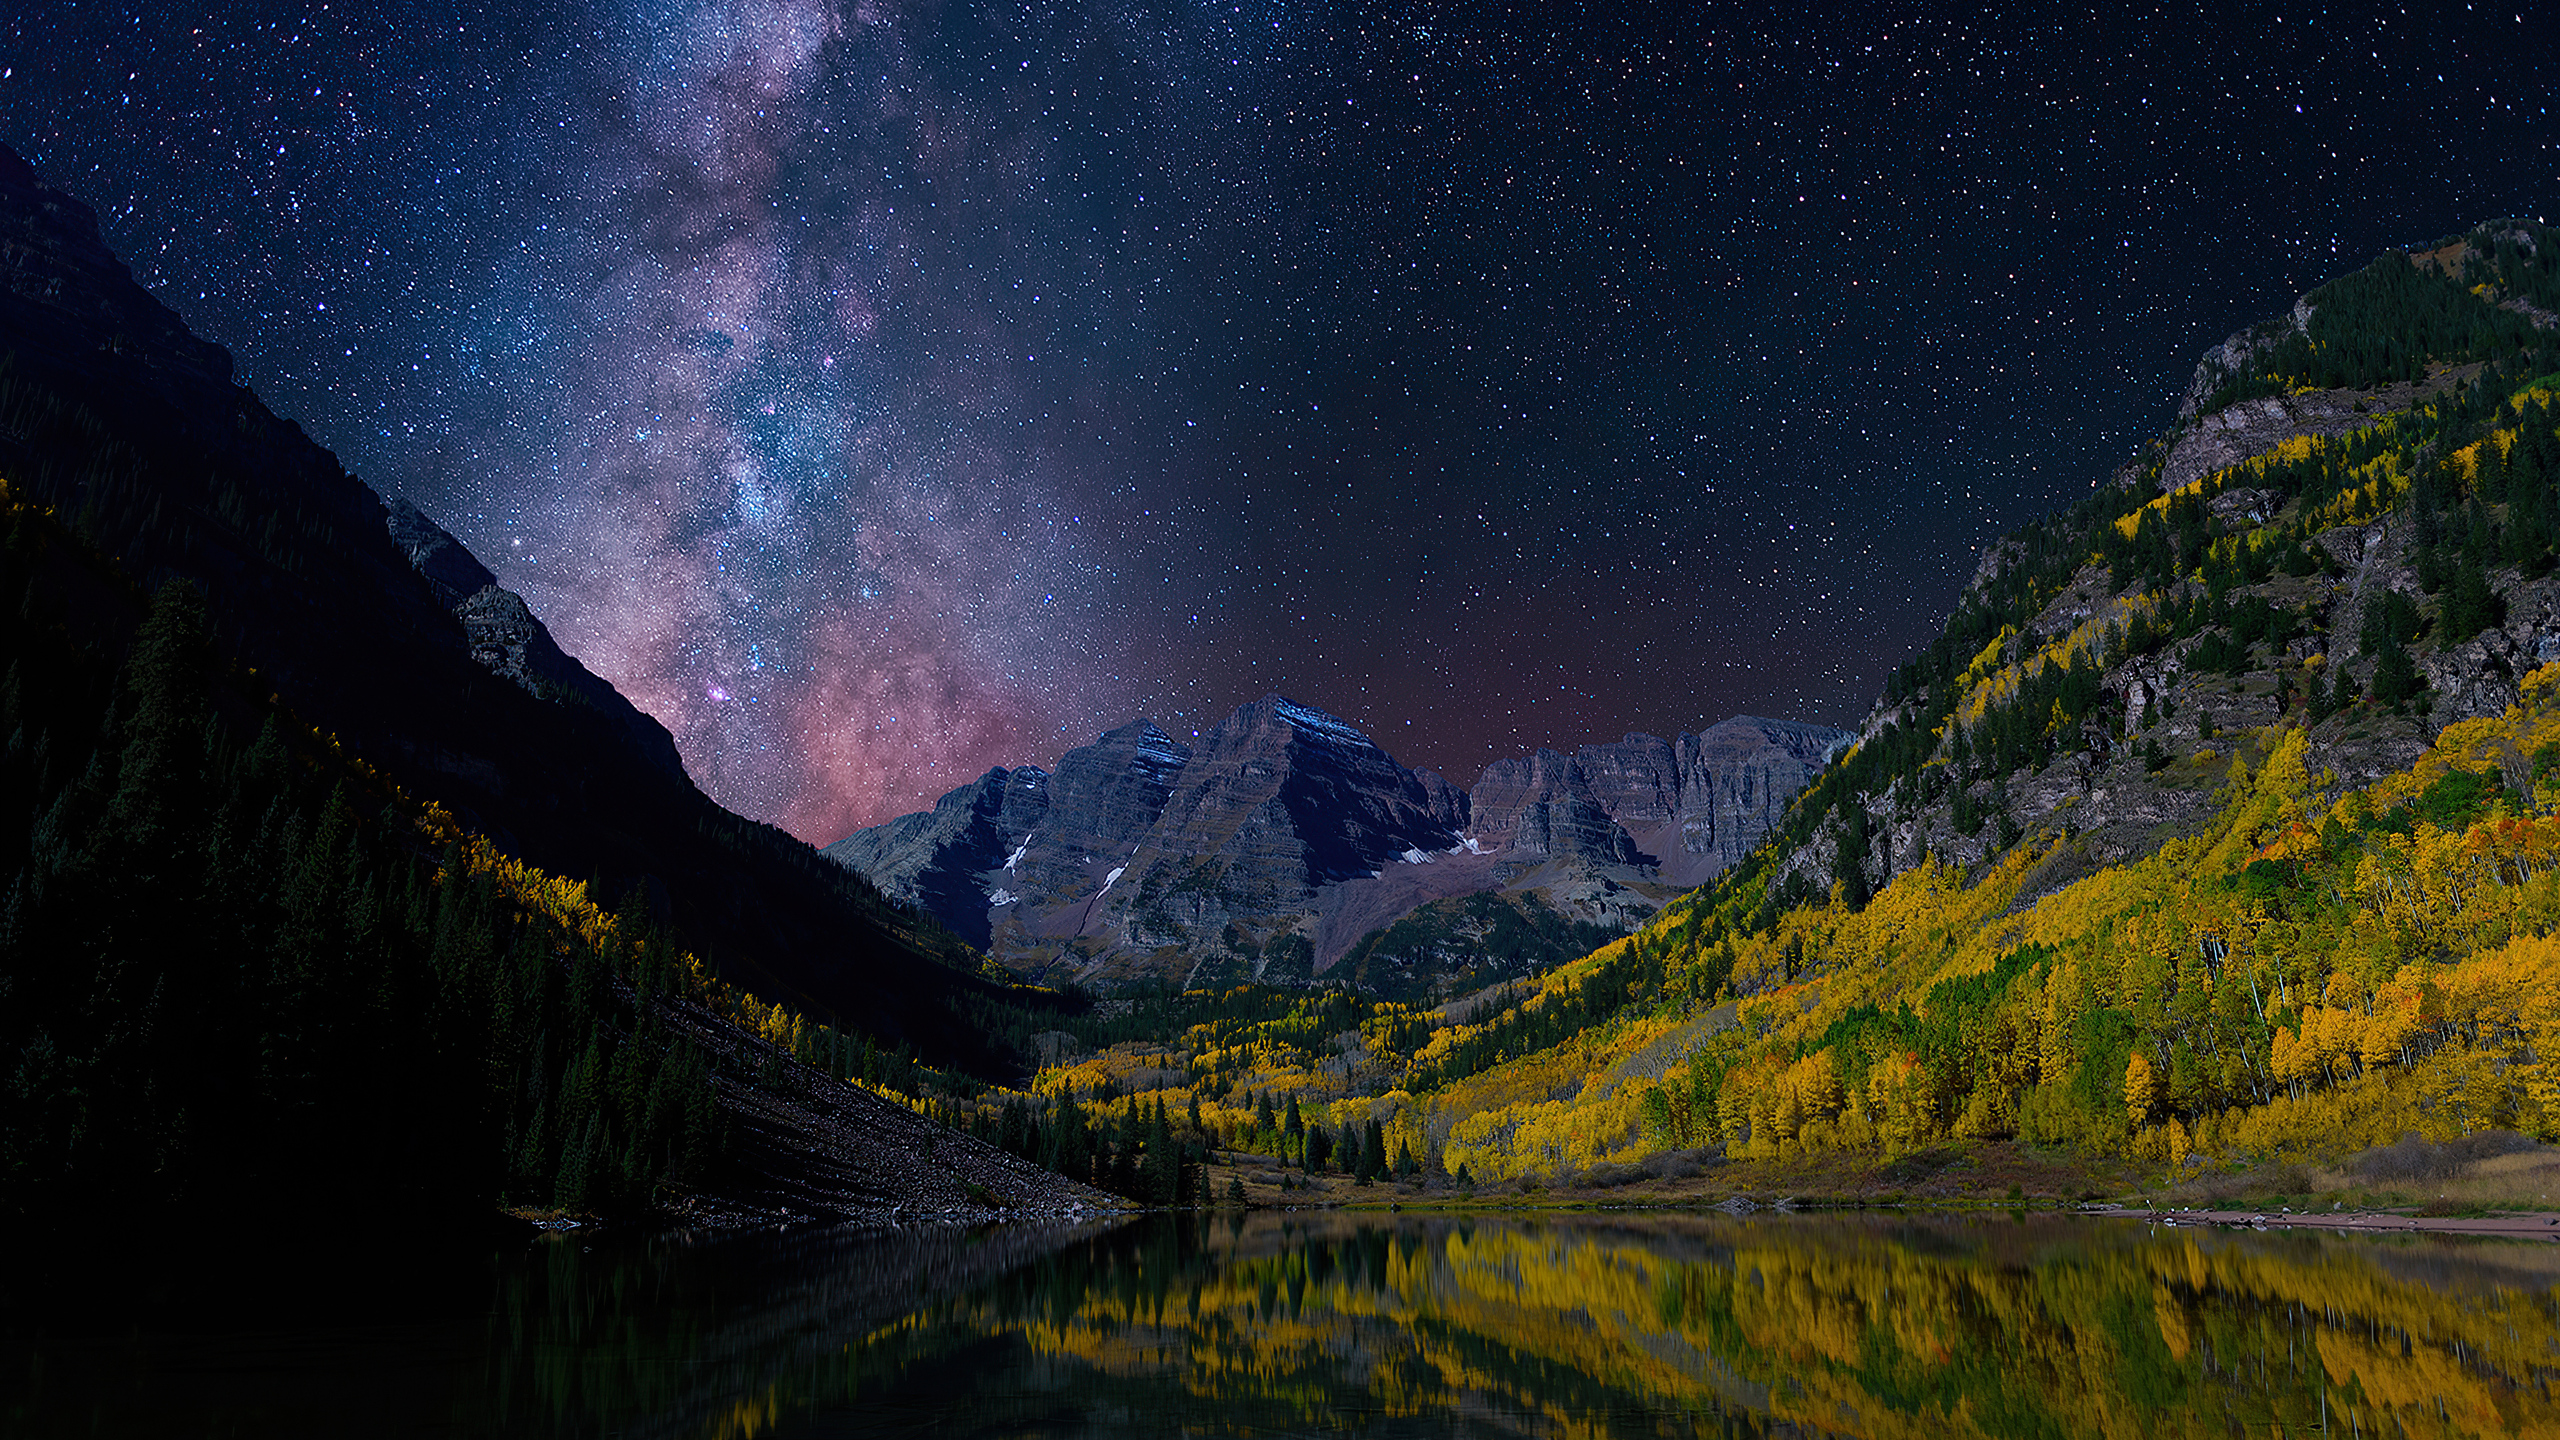 milky-way-on-starry-night-landscape-4k-vk.jpg